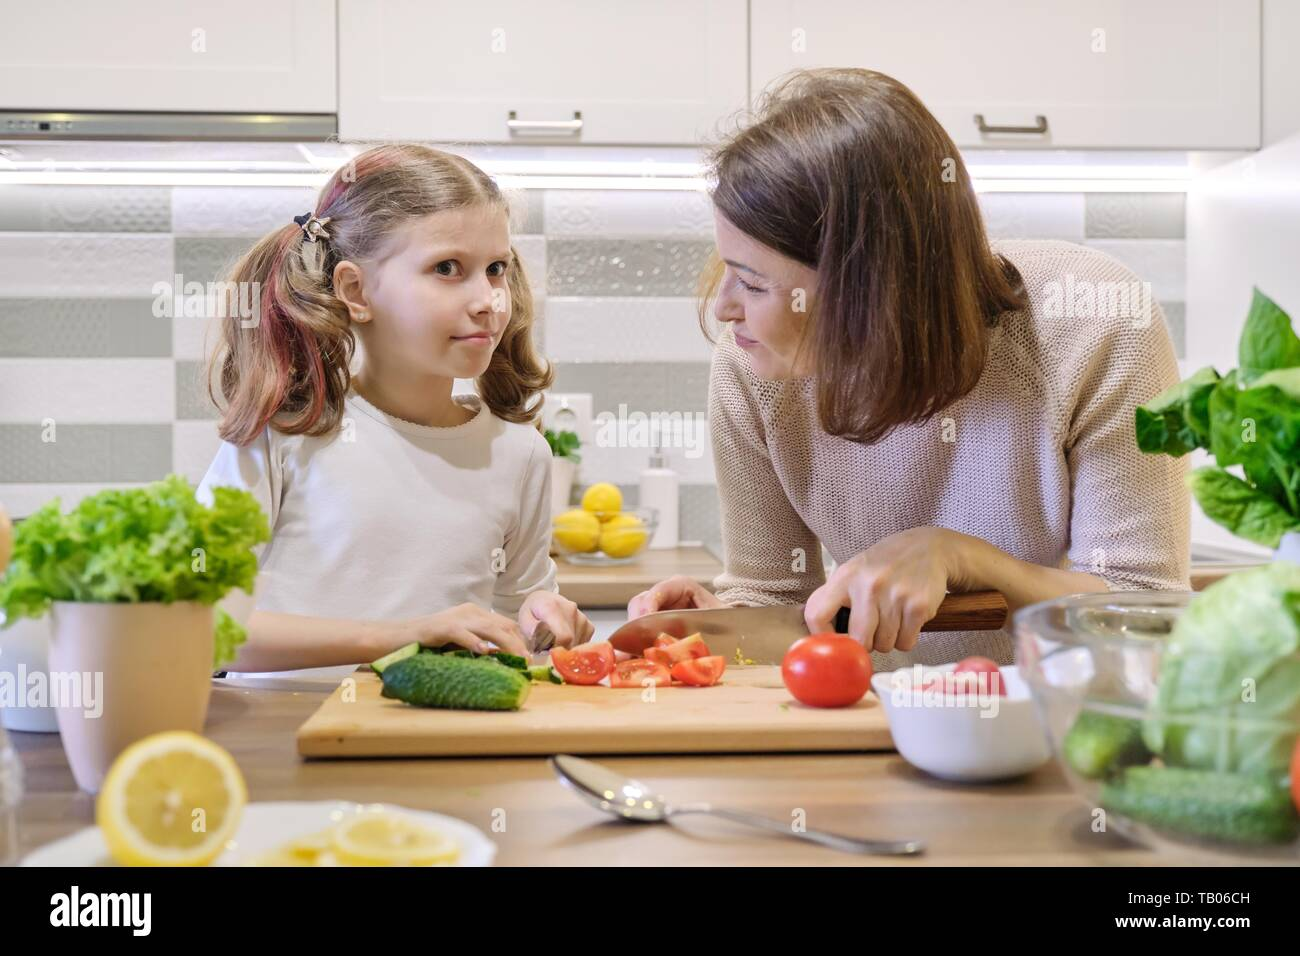 Mother and daughter cooking together in kitchen vegetable